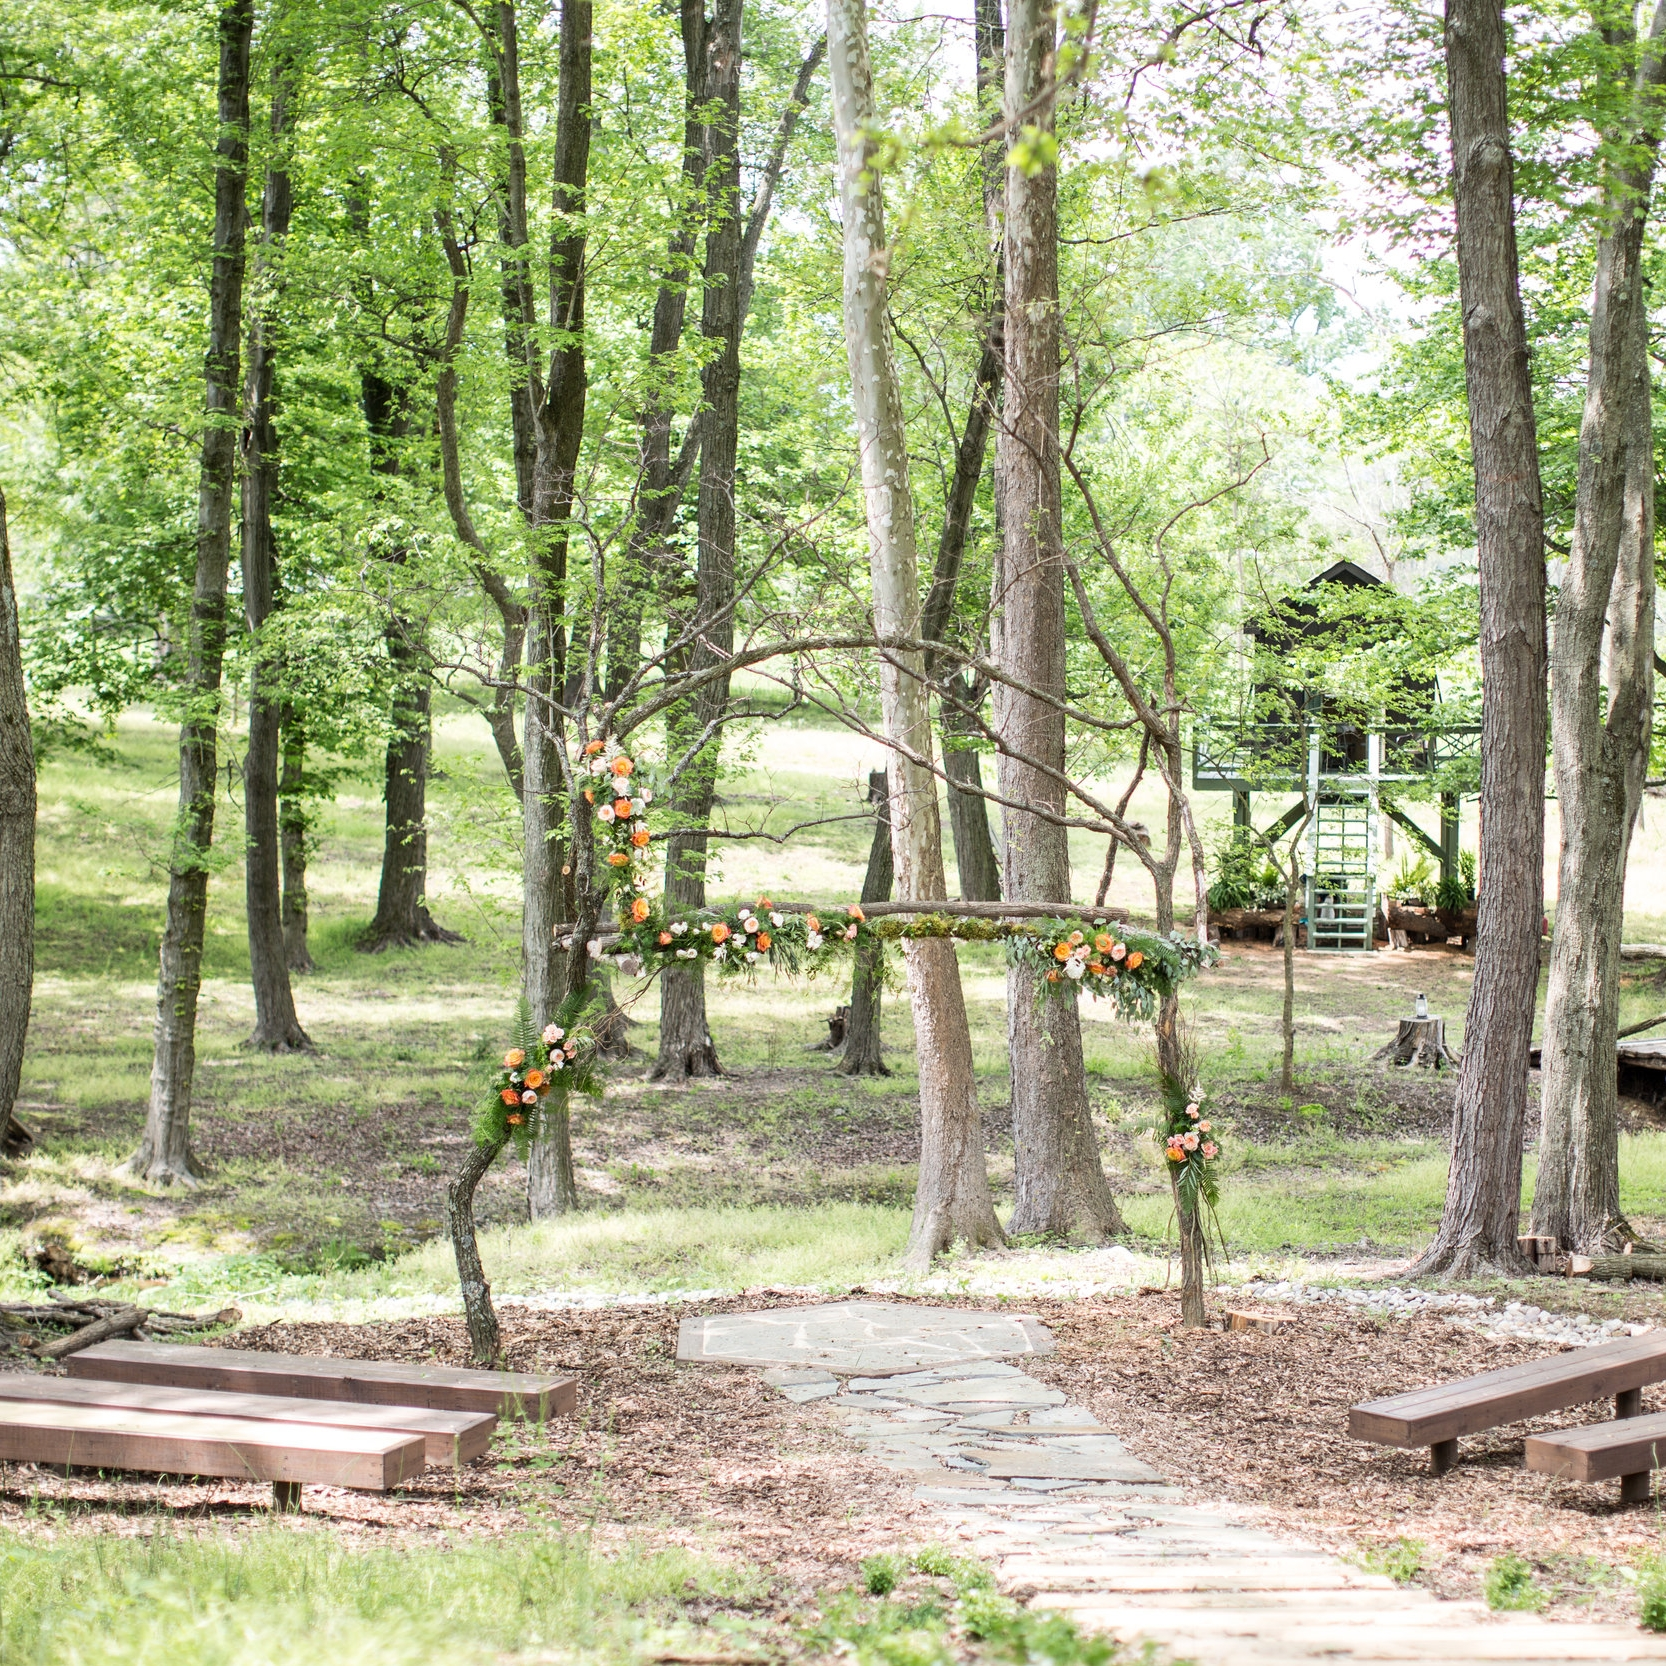 The Woodland - If you are looking for that one of a kind woodland ceremony location, look no further! We know that a woodland setting is hard to come by in this area. We have custom designed a woodland arch that is ready to be decorated to your hearts content. Guests may even witness a passing deer or two drinking from the nearby stream.Photo courtesy of Jalapeno Photography